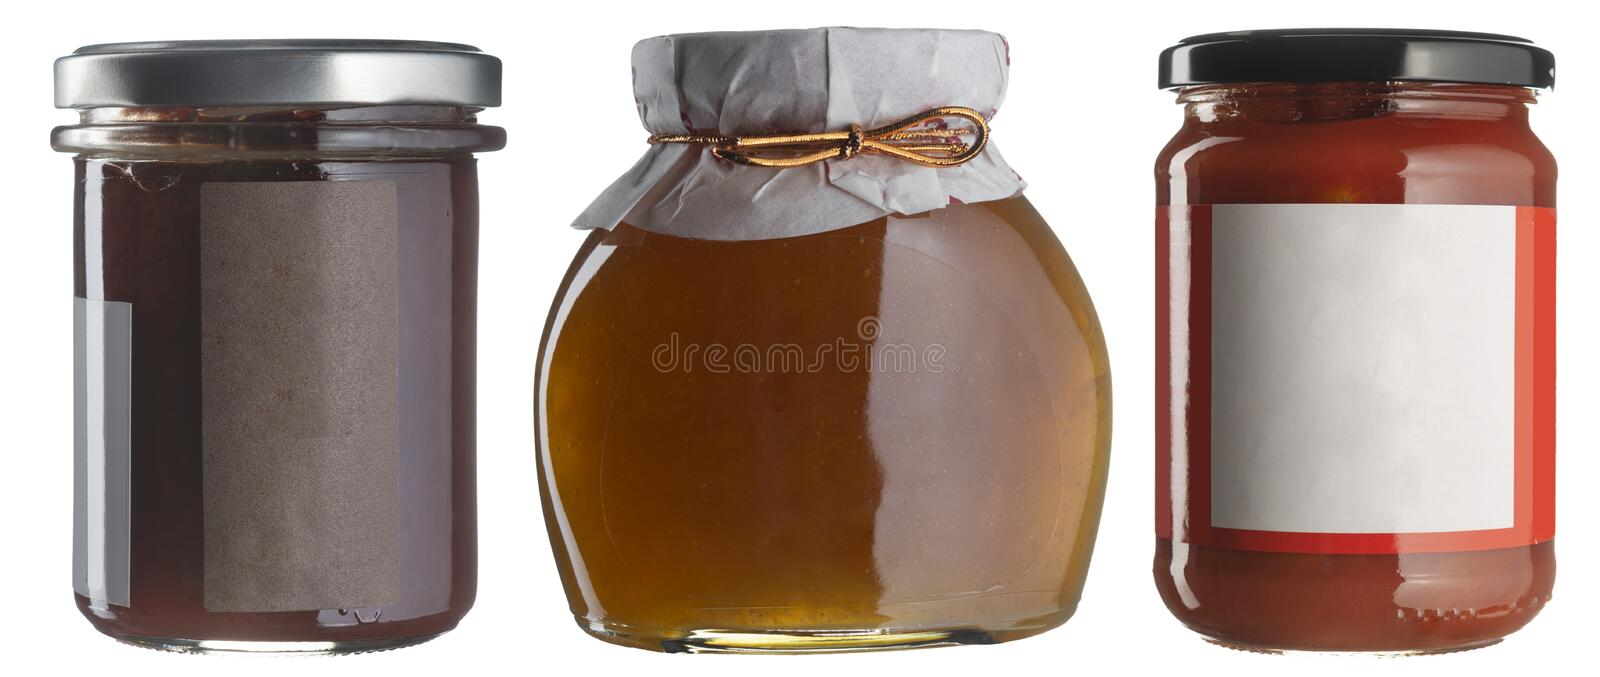 Jam jar set whith blank labels isolated on white. stock images